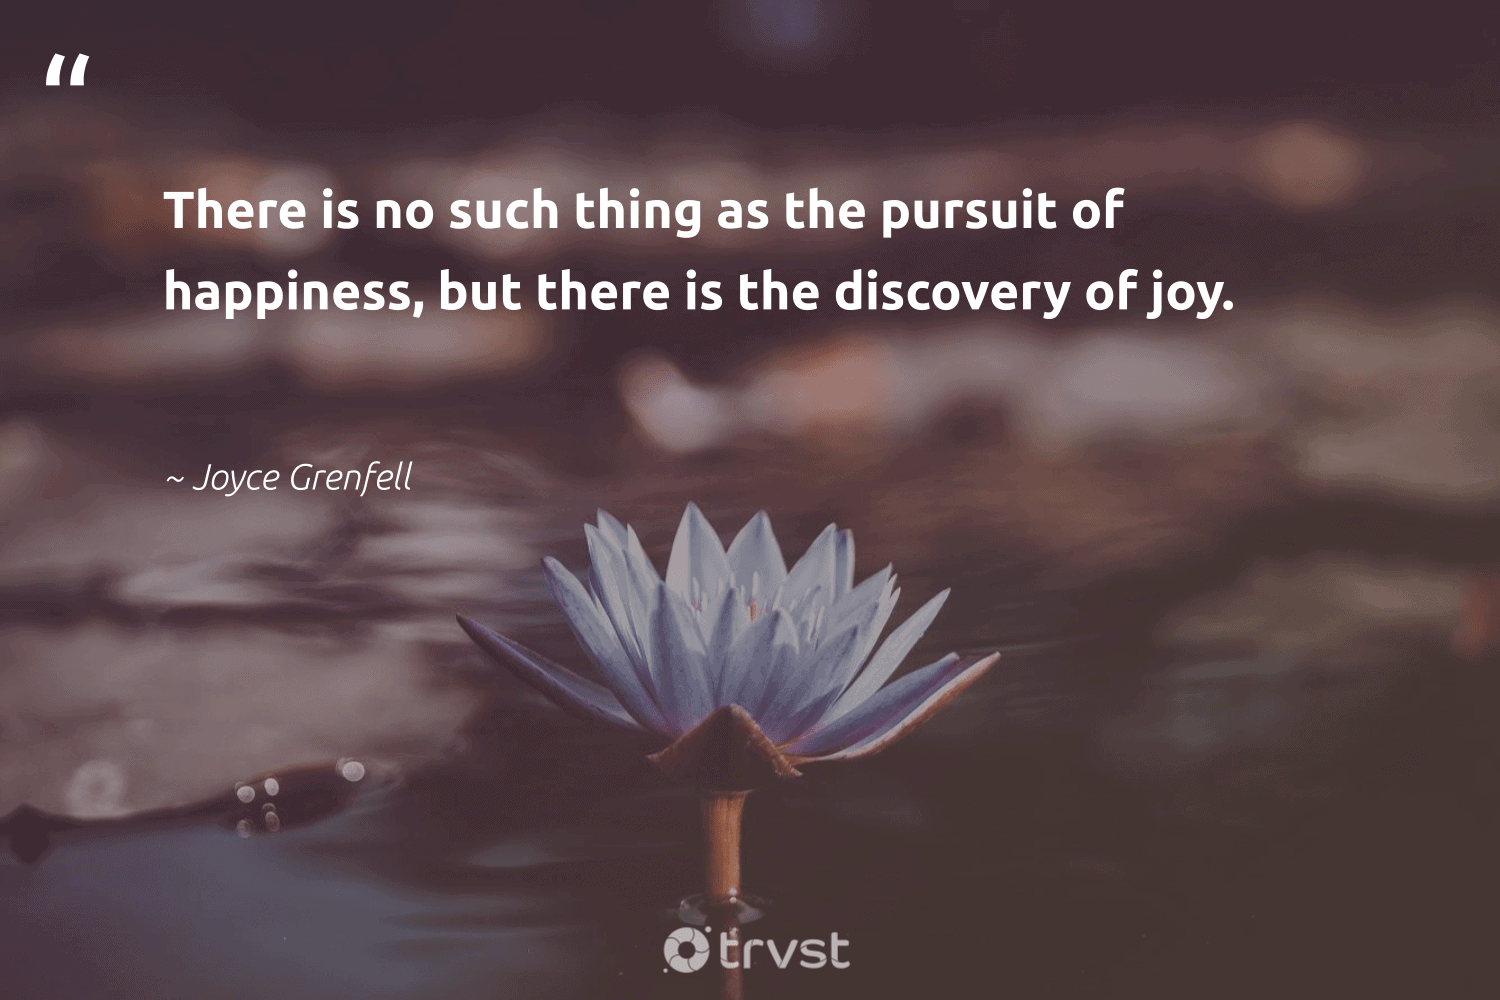 """""""There is no such thing as the pursuit of happiness, but there is the discovery of joy.""""  - Joyce Grenfell #trvst #quotes #happiness #begreat #changetheworld #nevergiveup #impact #mindset #takeaction #togetherwecan #socialchange #health"""